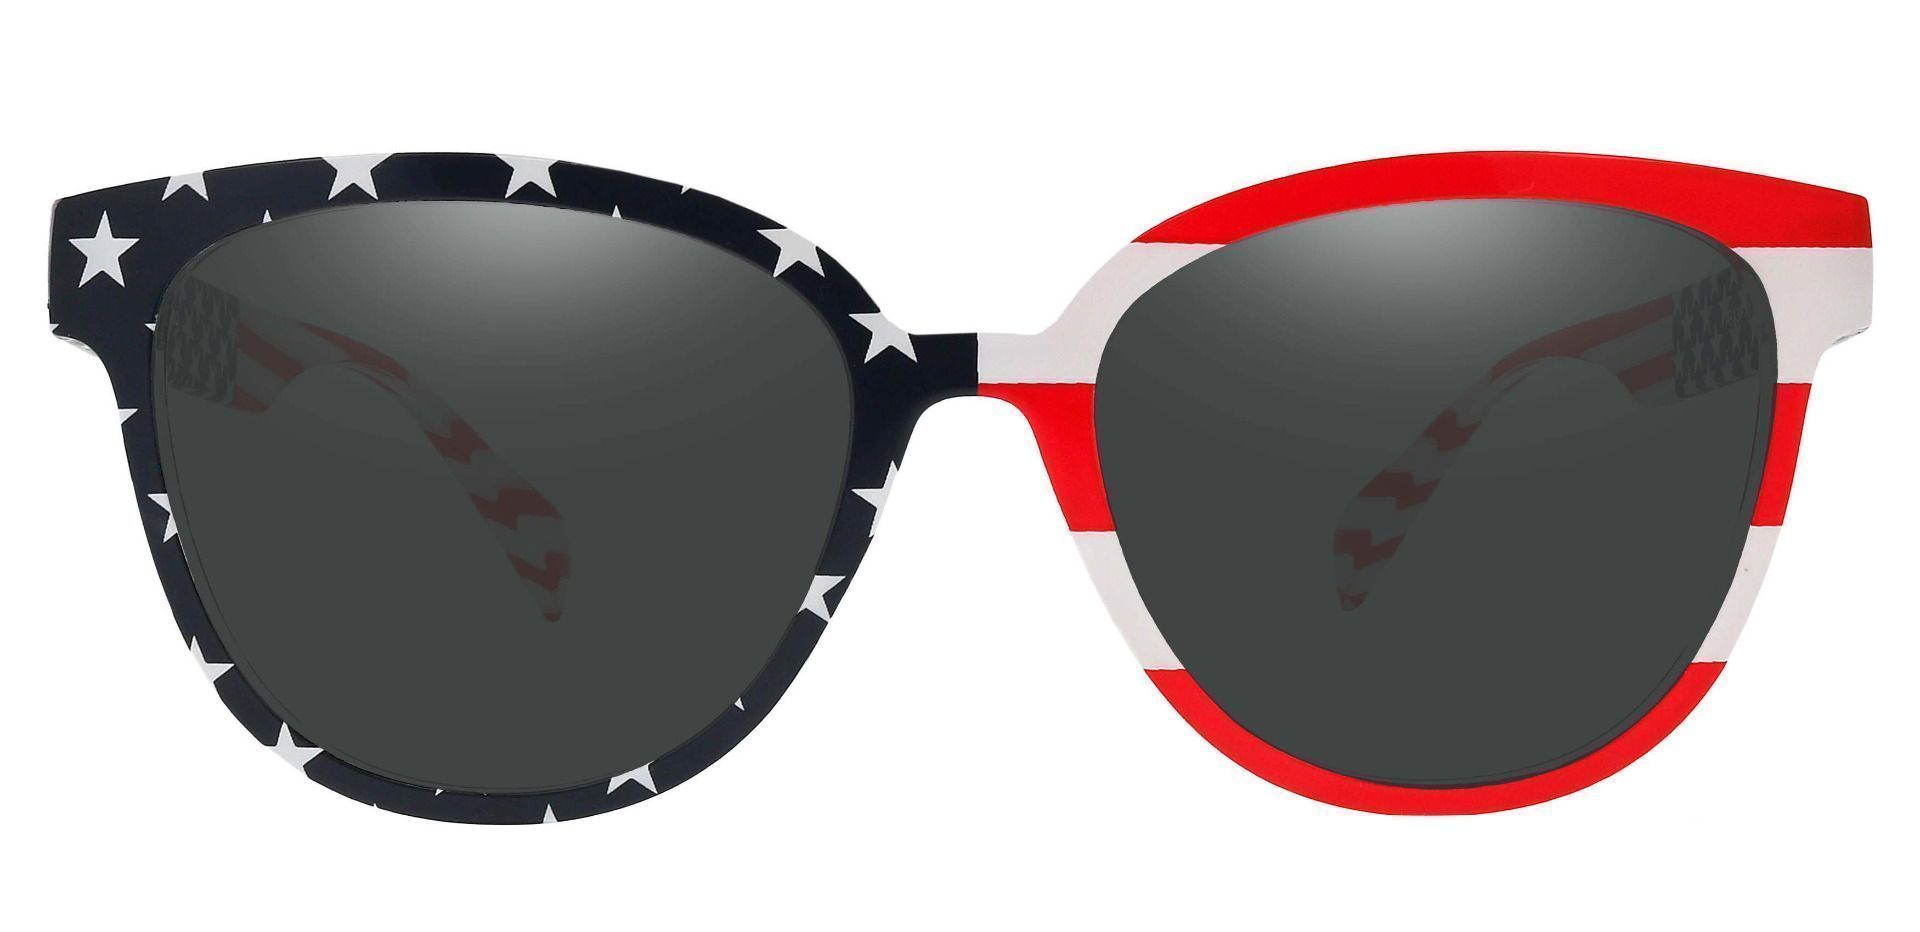 Union Square Lined Bifocal Sunglasses - Floral Frame With Gray Lenses